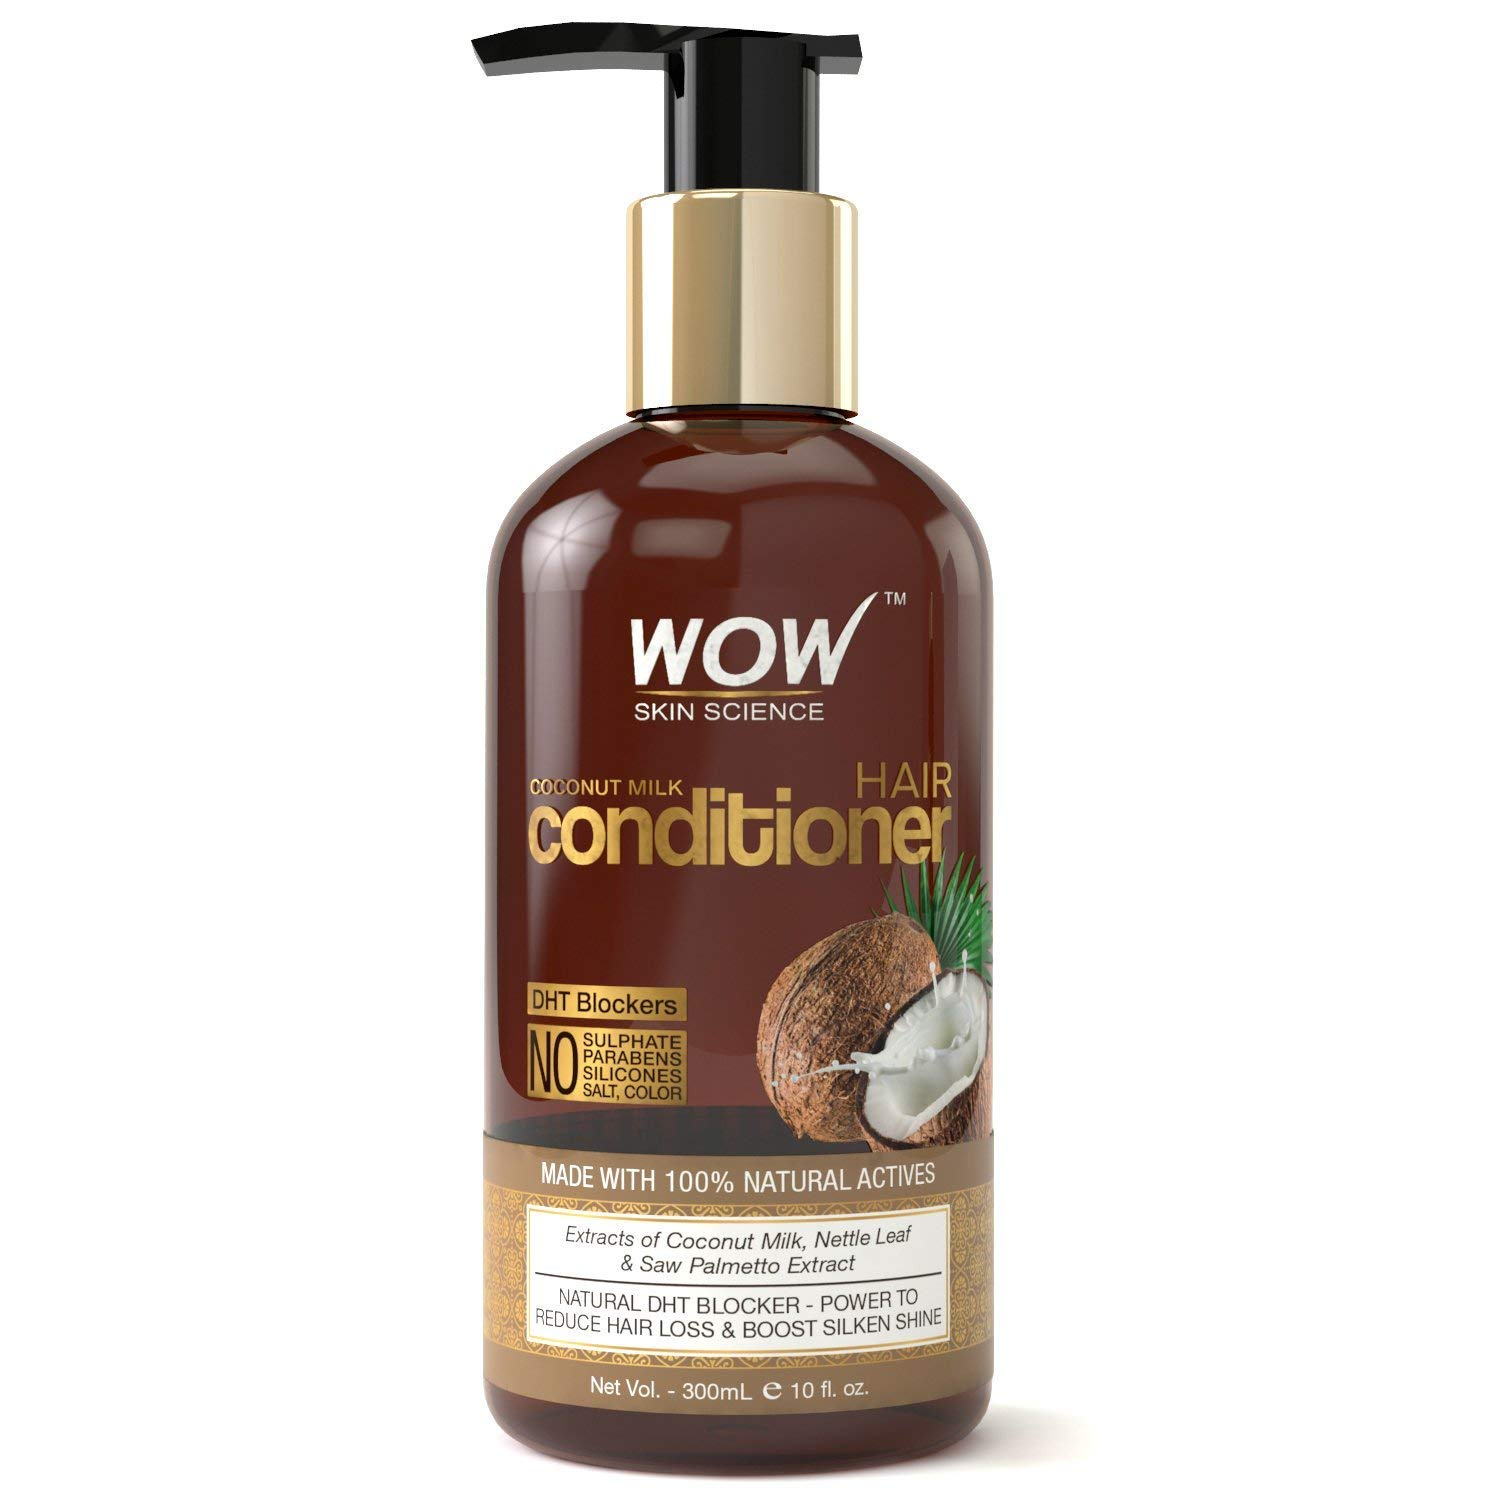 WOW Coconut Milk Conditioner - No Parabens,Minerals Silicones,& Color -with DHT BLOCKERS -300mL product image